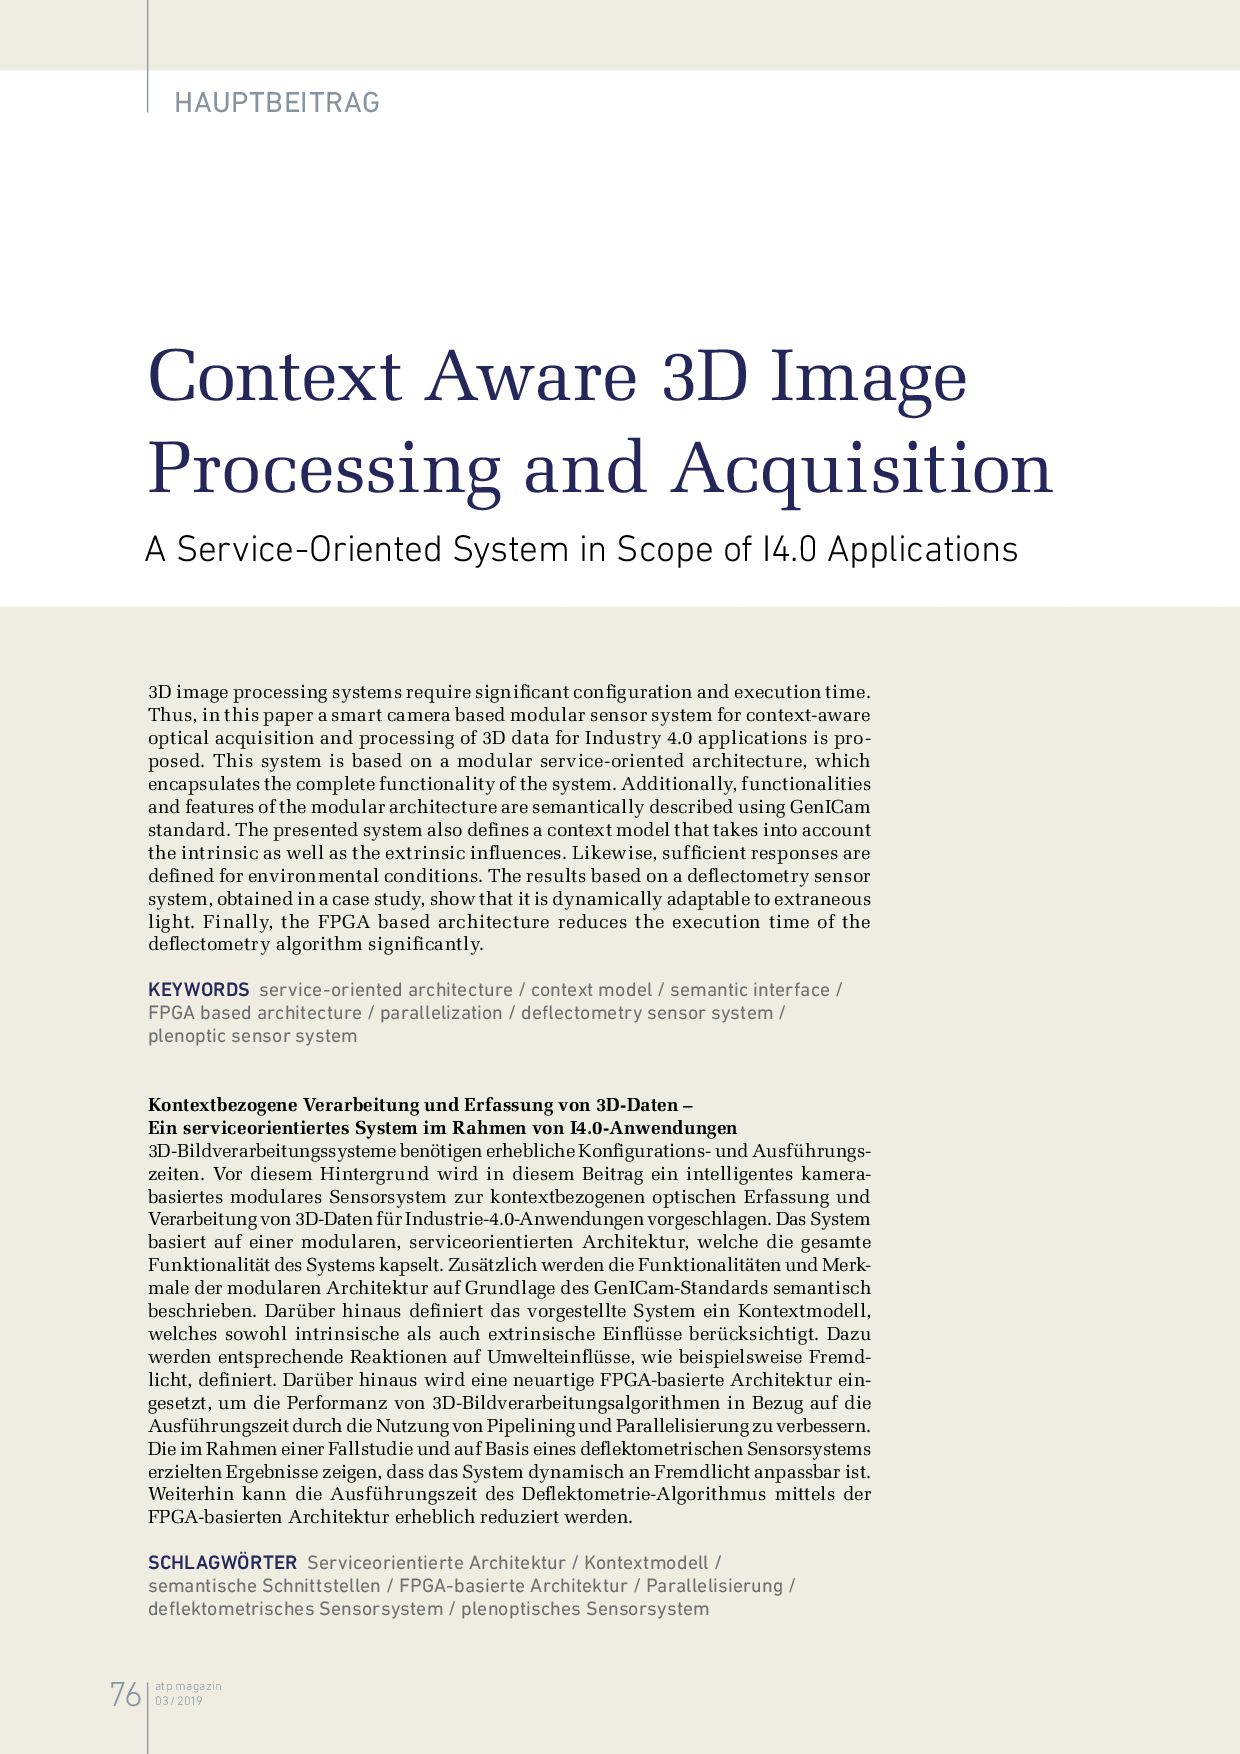 Context Aware 3D Image Processing and Acquisition